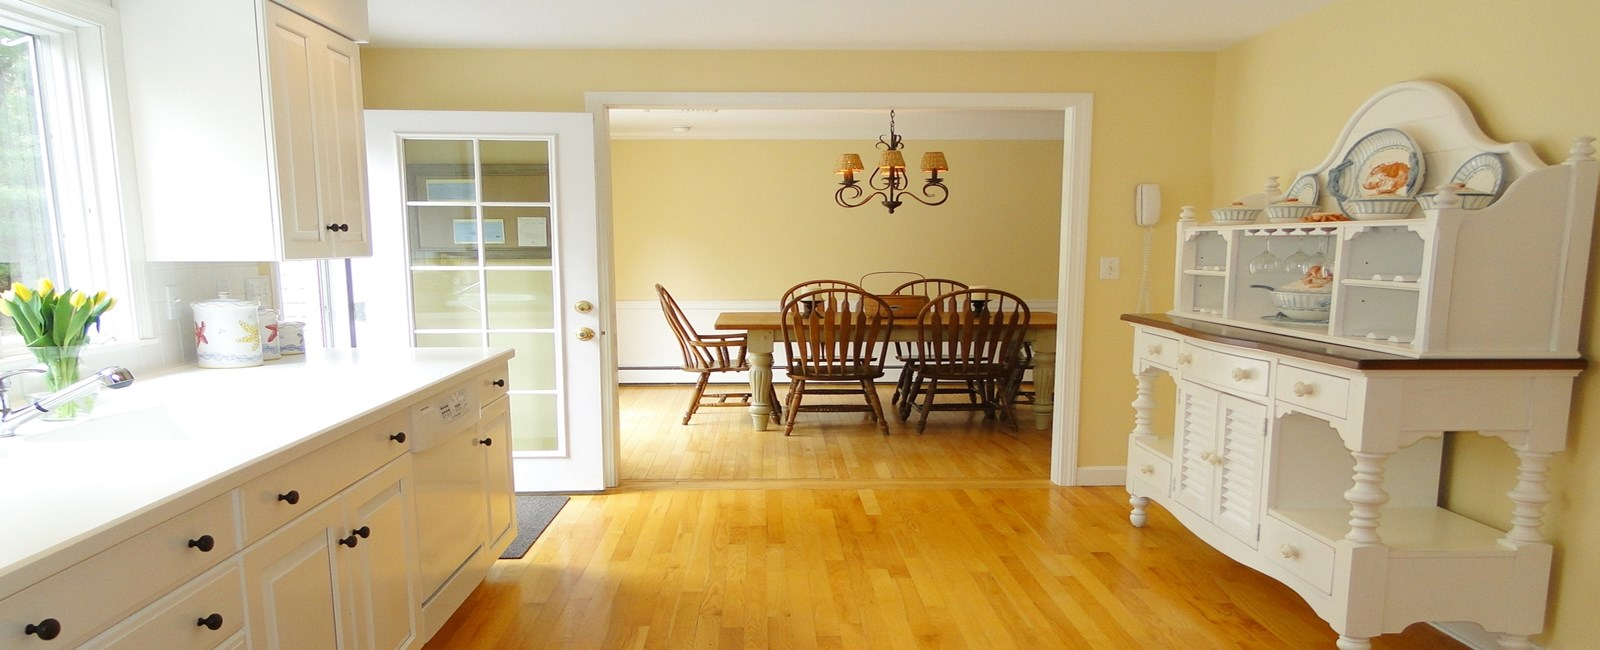 Check out these vacation rental kitchens. Some are fancy, some cozy, and some comfortable sitting areas. They all look like great spots to gather and cook up some local Cape Cod, Martha's Vineyard, and Nantucket food.